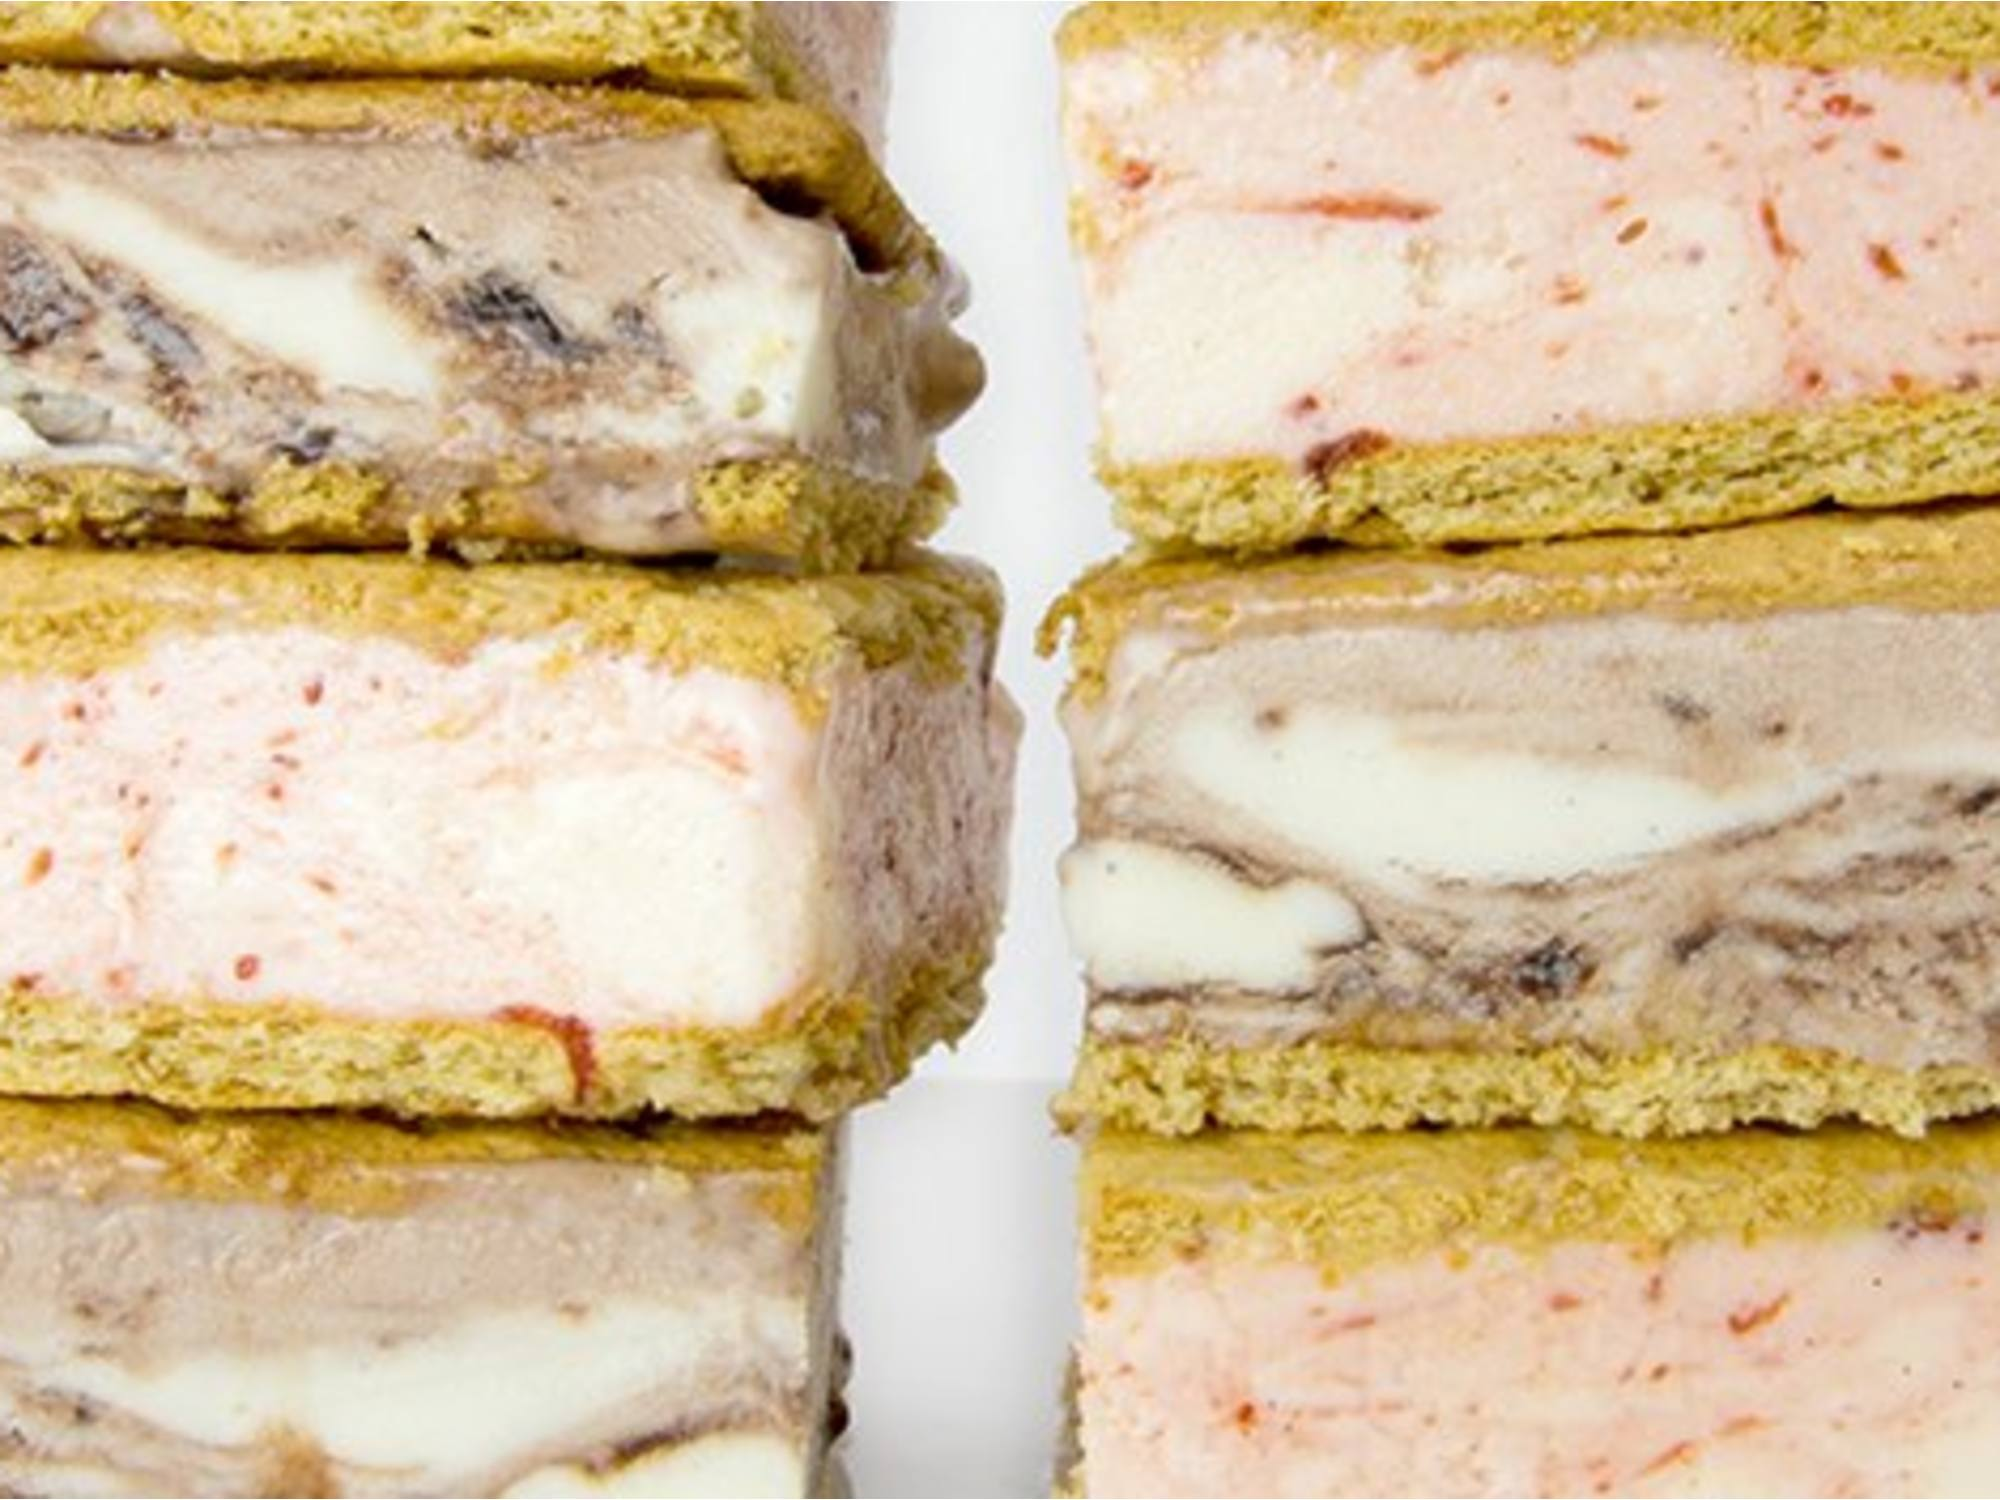 Homemade Graham Cracker Ice Cream Sandwiches